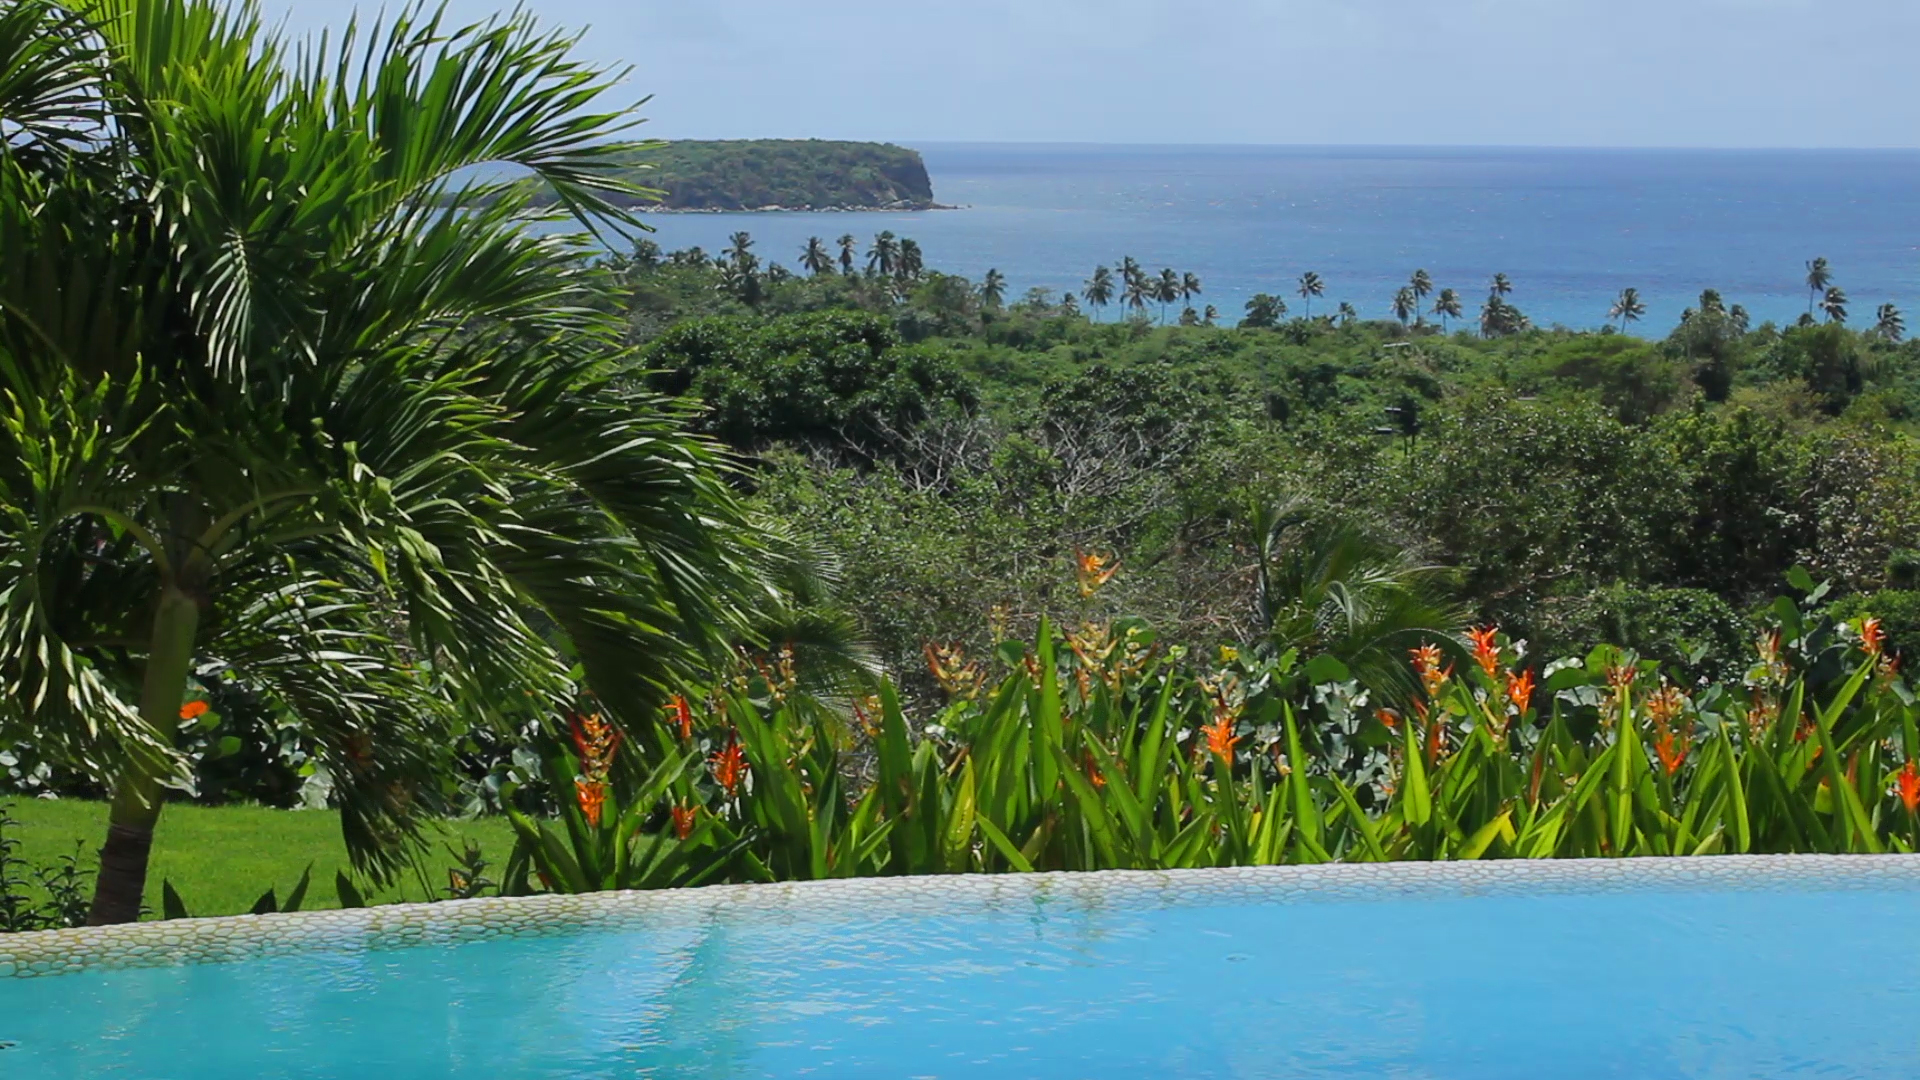 View of the Caribbean from Los Arcos